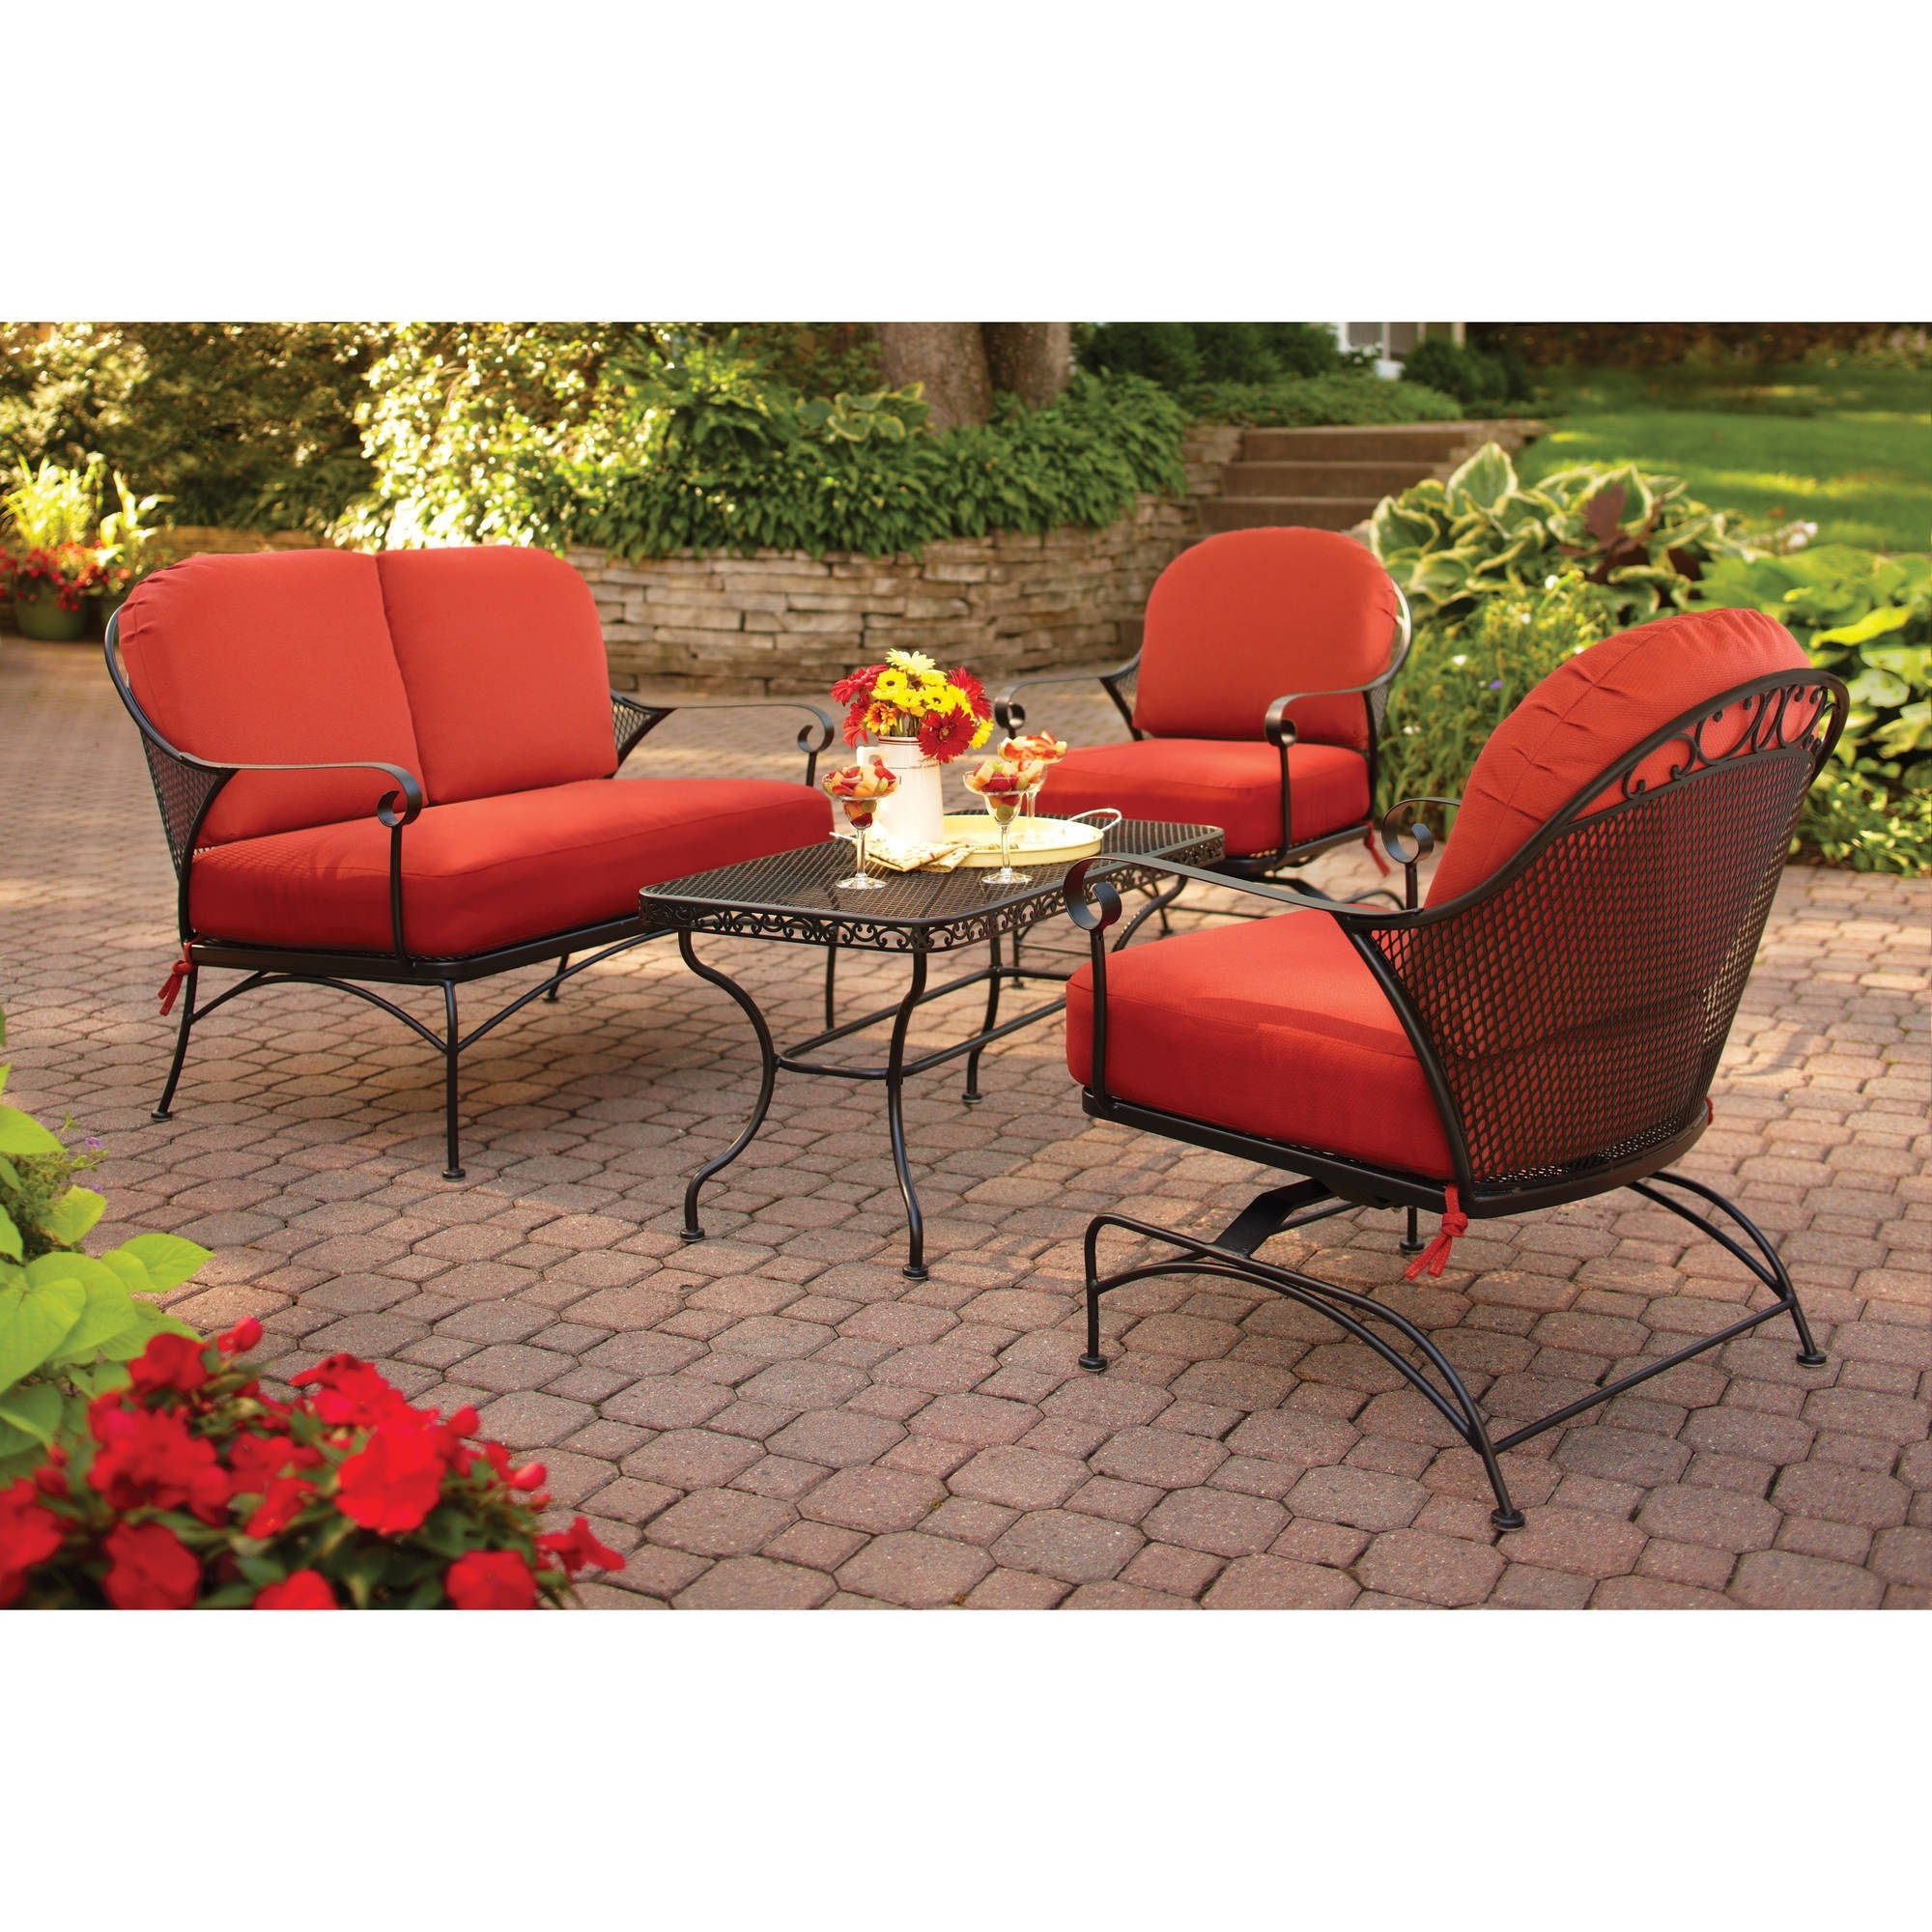 Better Homes And Gardens Clayton Court 4 Piece Patio Conversation Throughout Most Popular Walmart Patio Furniture Conversation Sets (View 6 of 15)